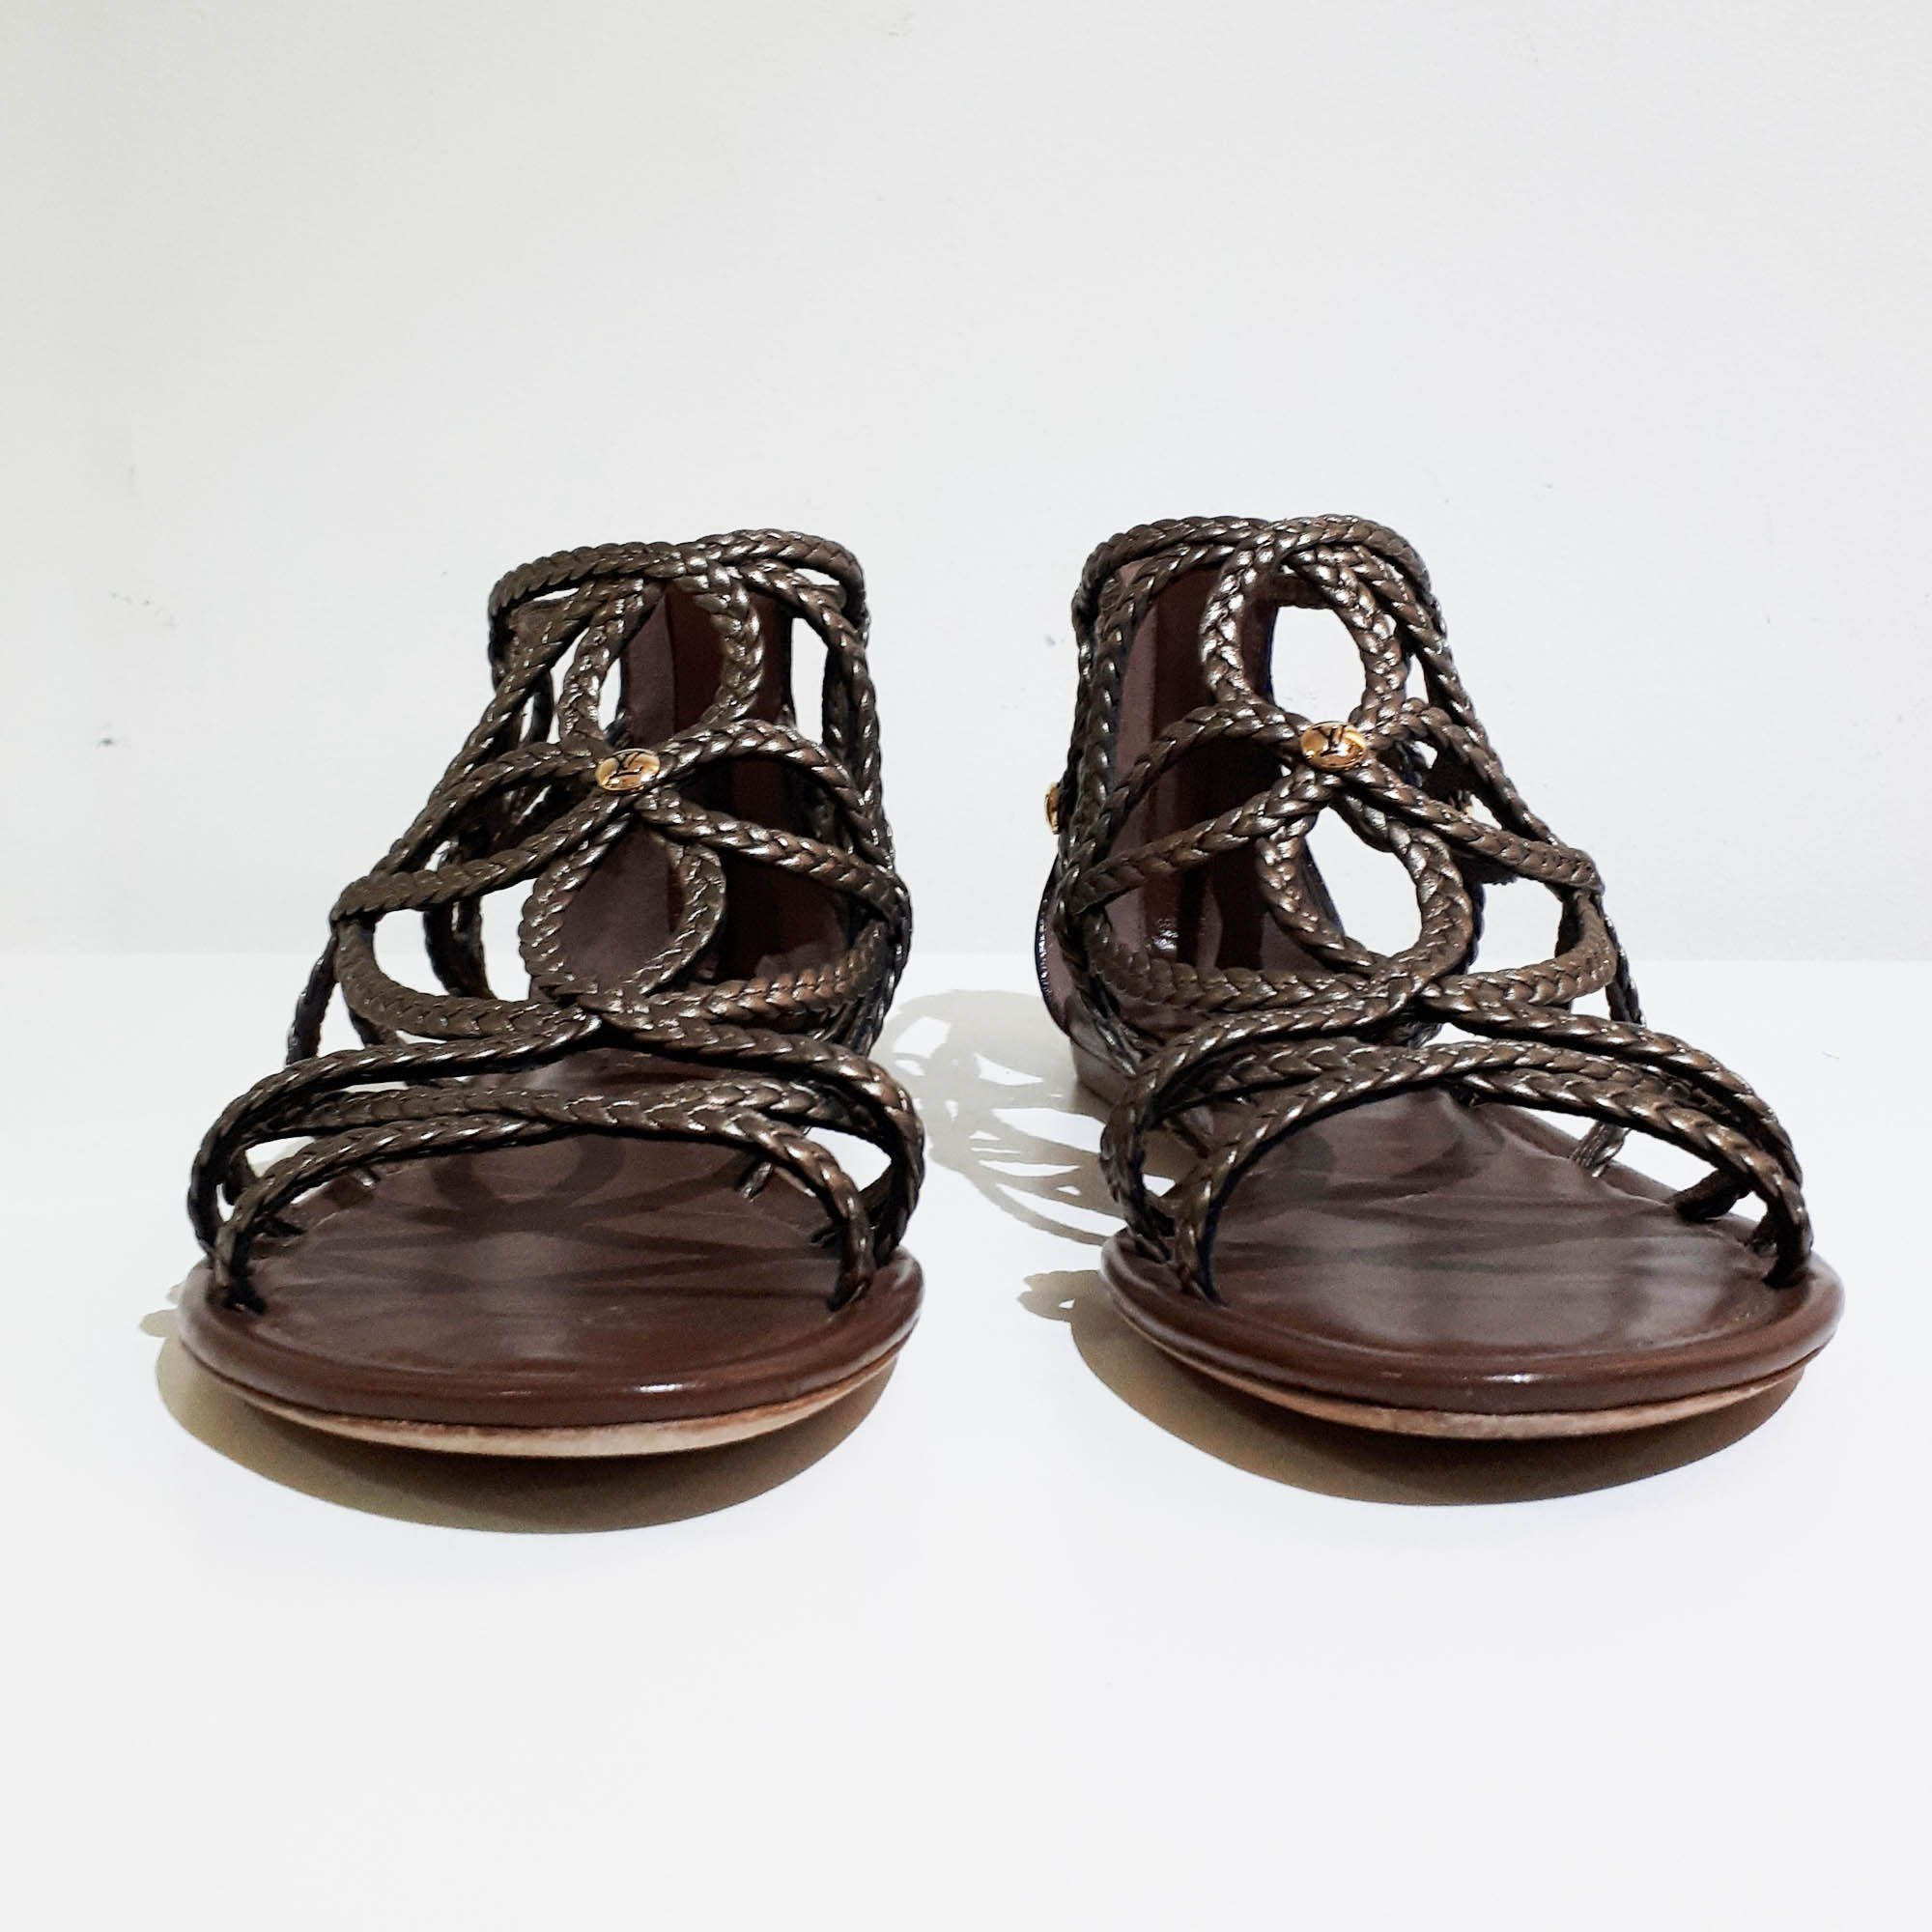 Louis Vuitton Braided Leather Gladiator Sandal